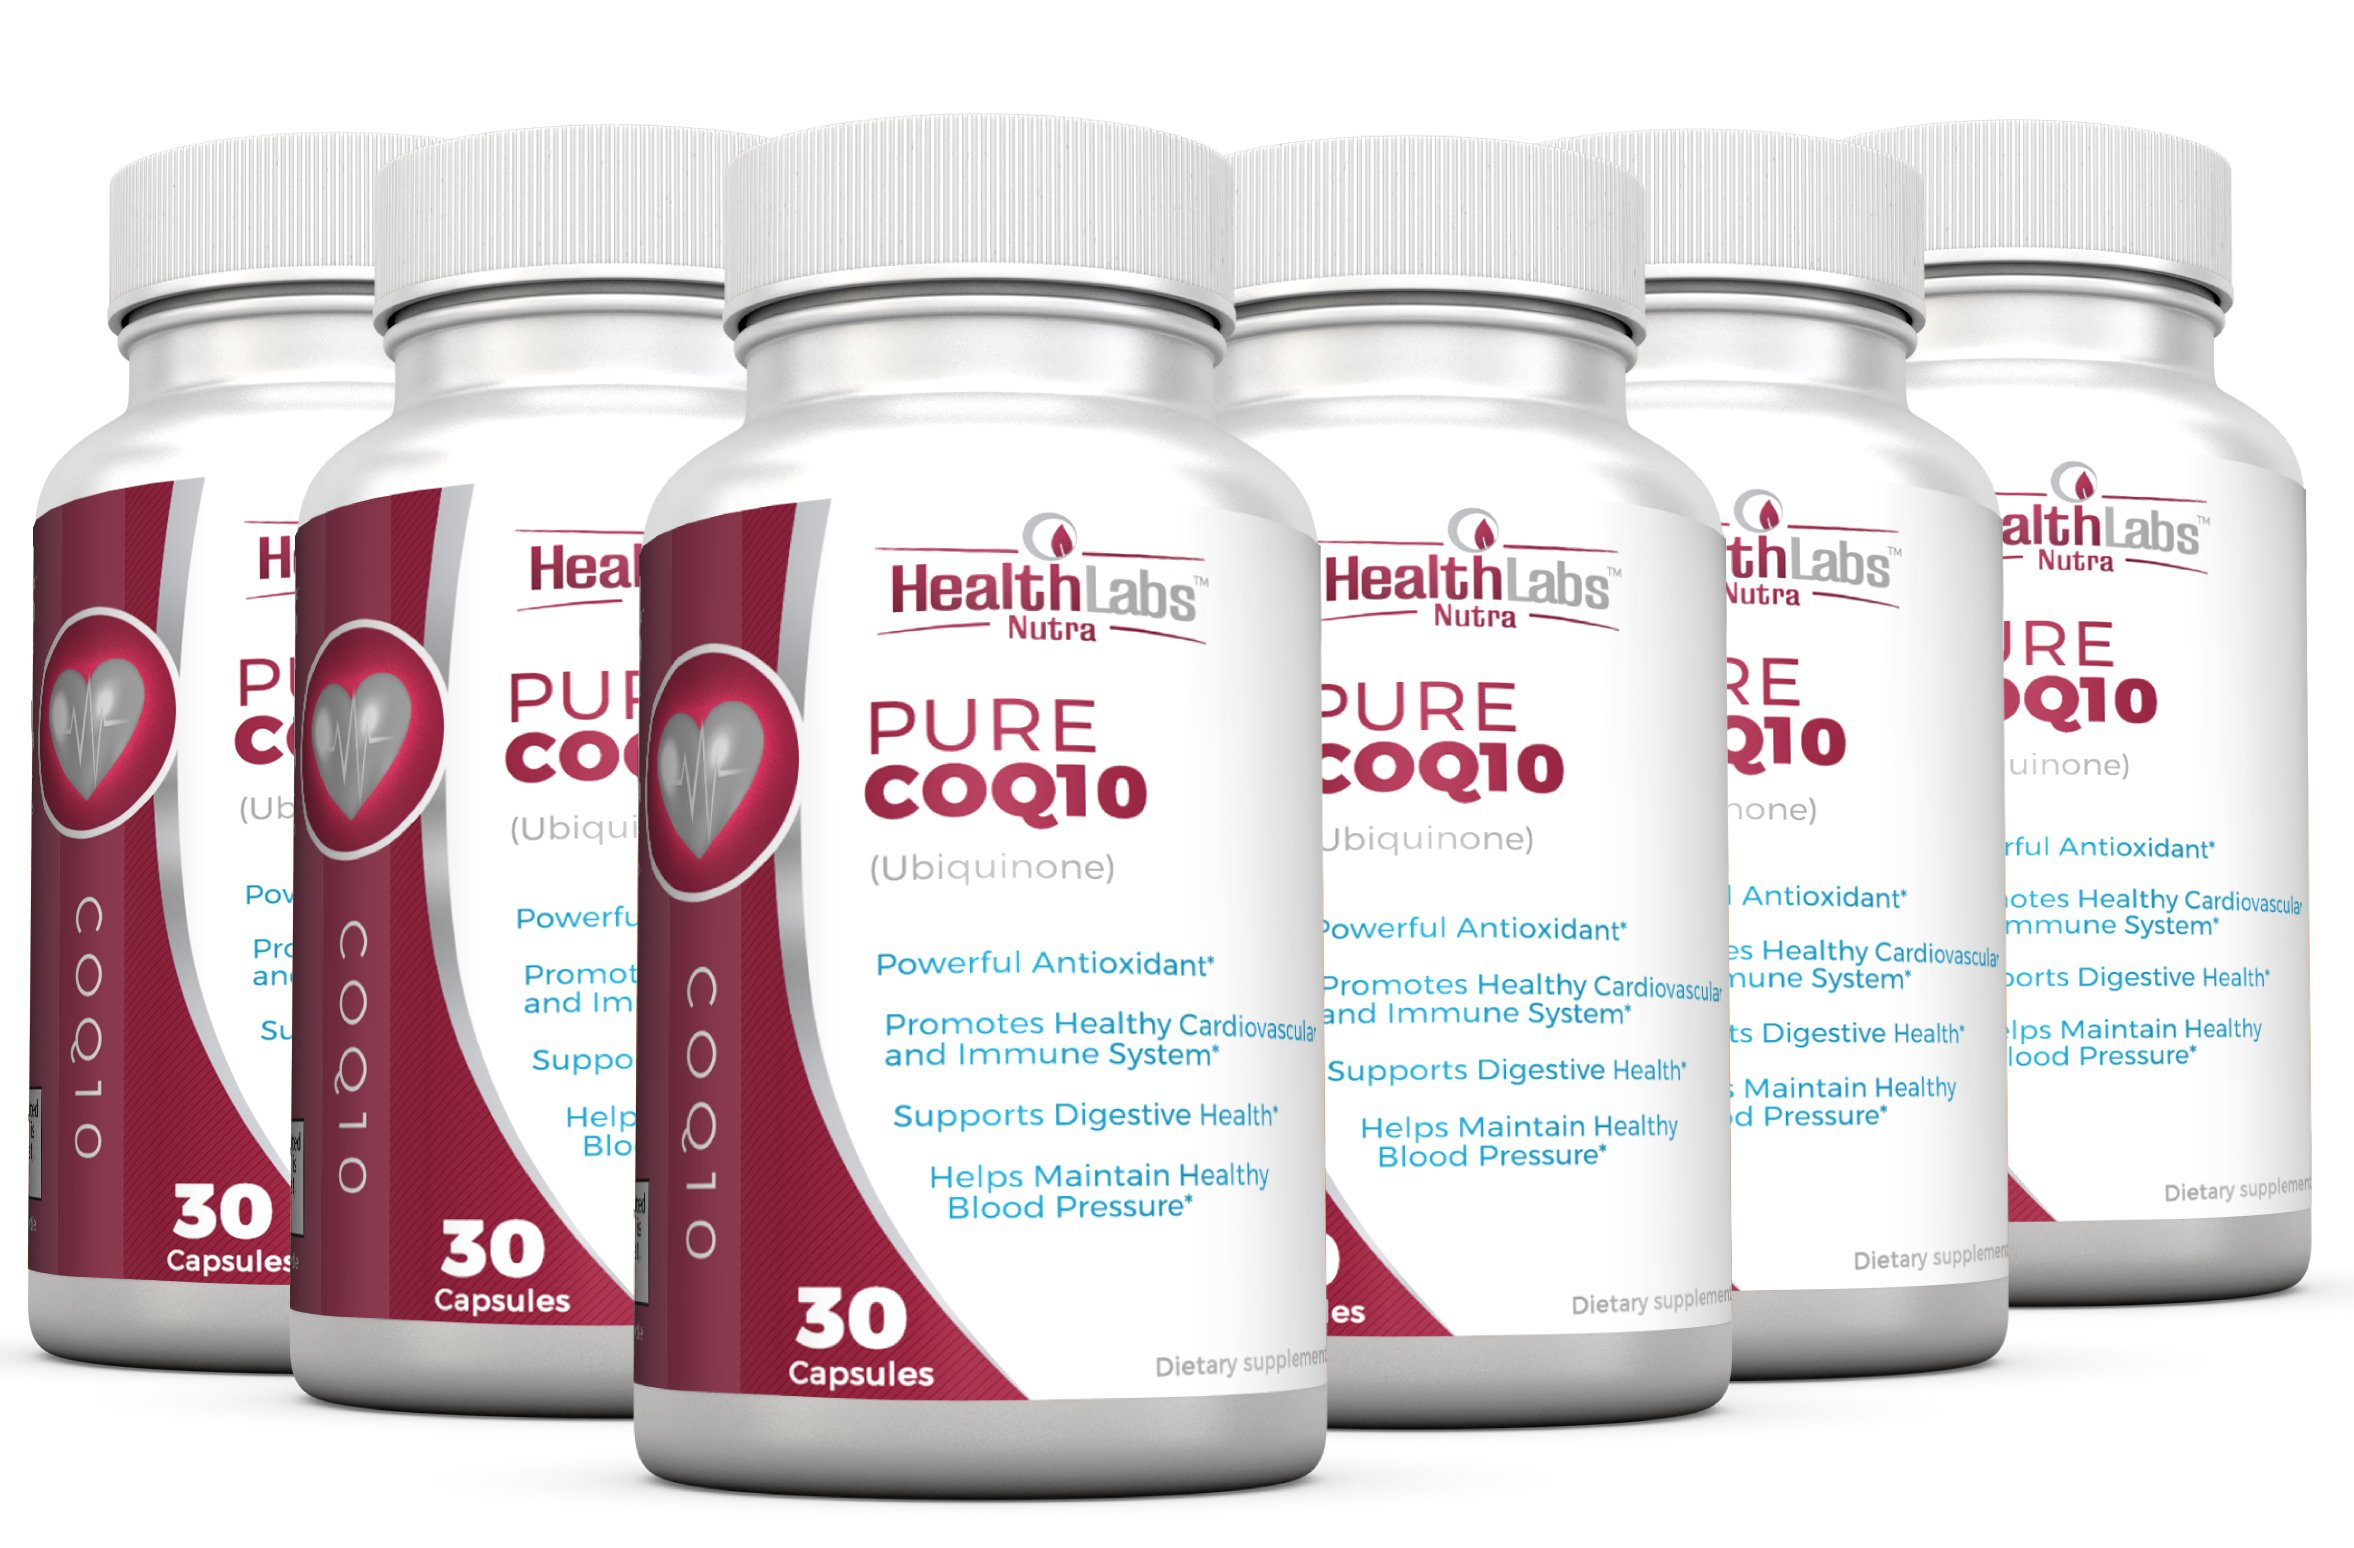 CoQ10 Ubiquinone 200mg (6-Month Supply) - Promotes Increased Cell Energy & Protection; Supports Heart, Immune & Nervous System Health | Vegan-Friendly Ingredients